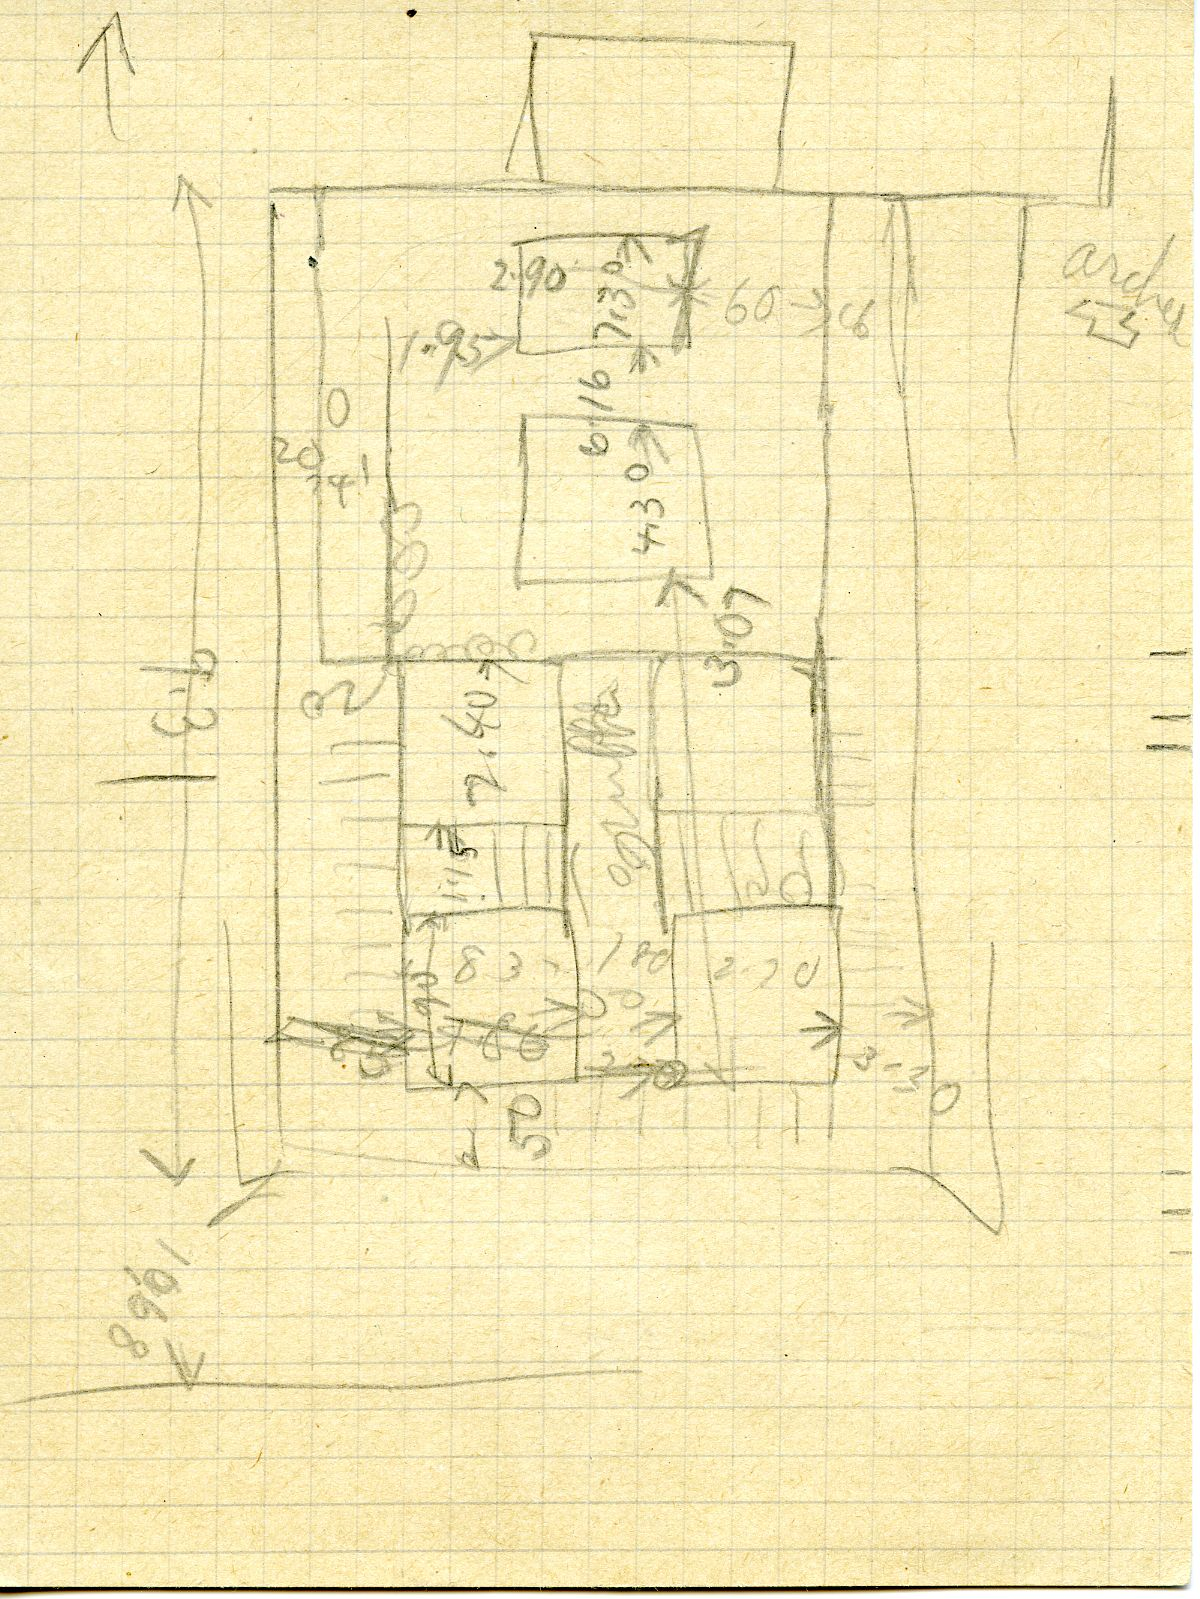 Maps and plans: Cemetery G 3000, Sketch plan